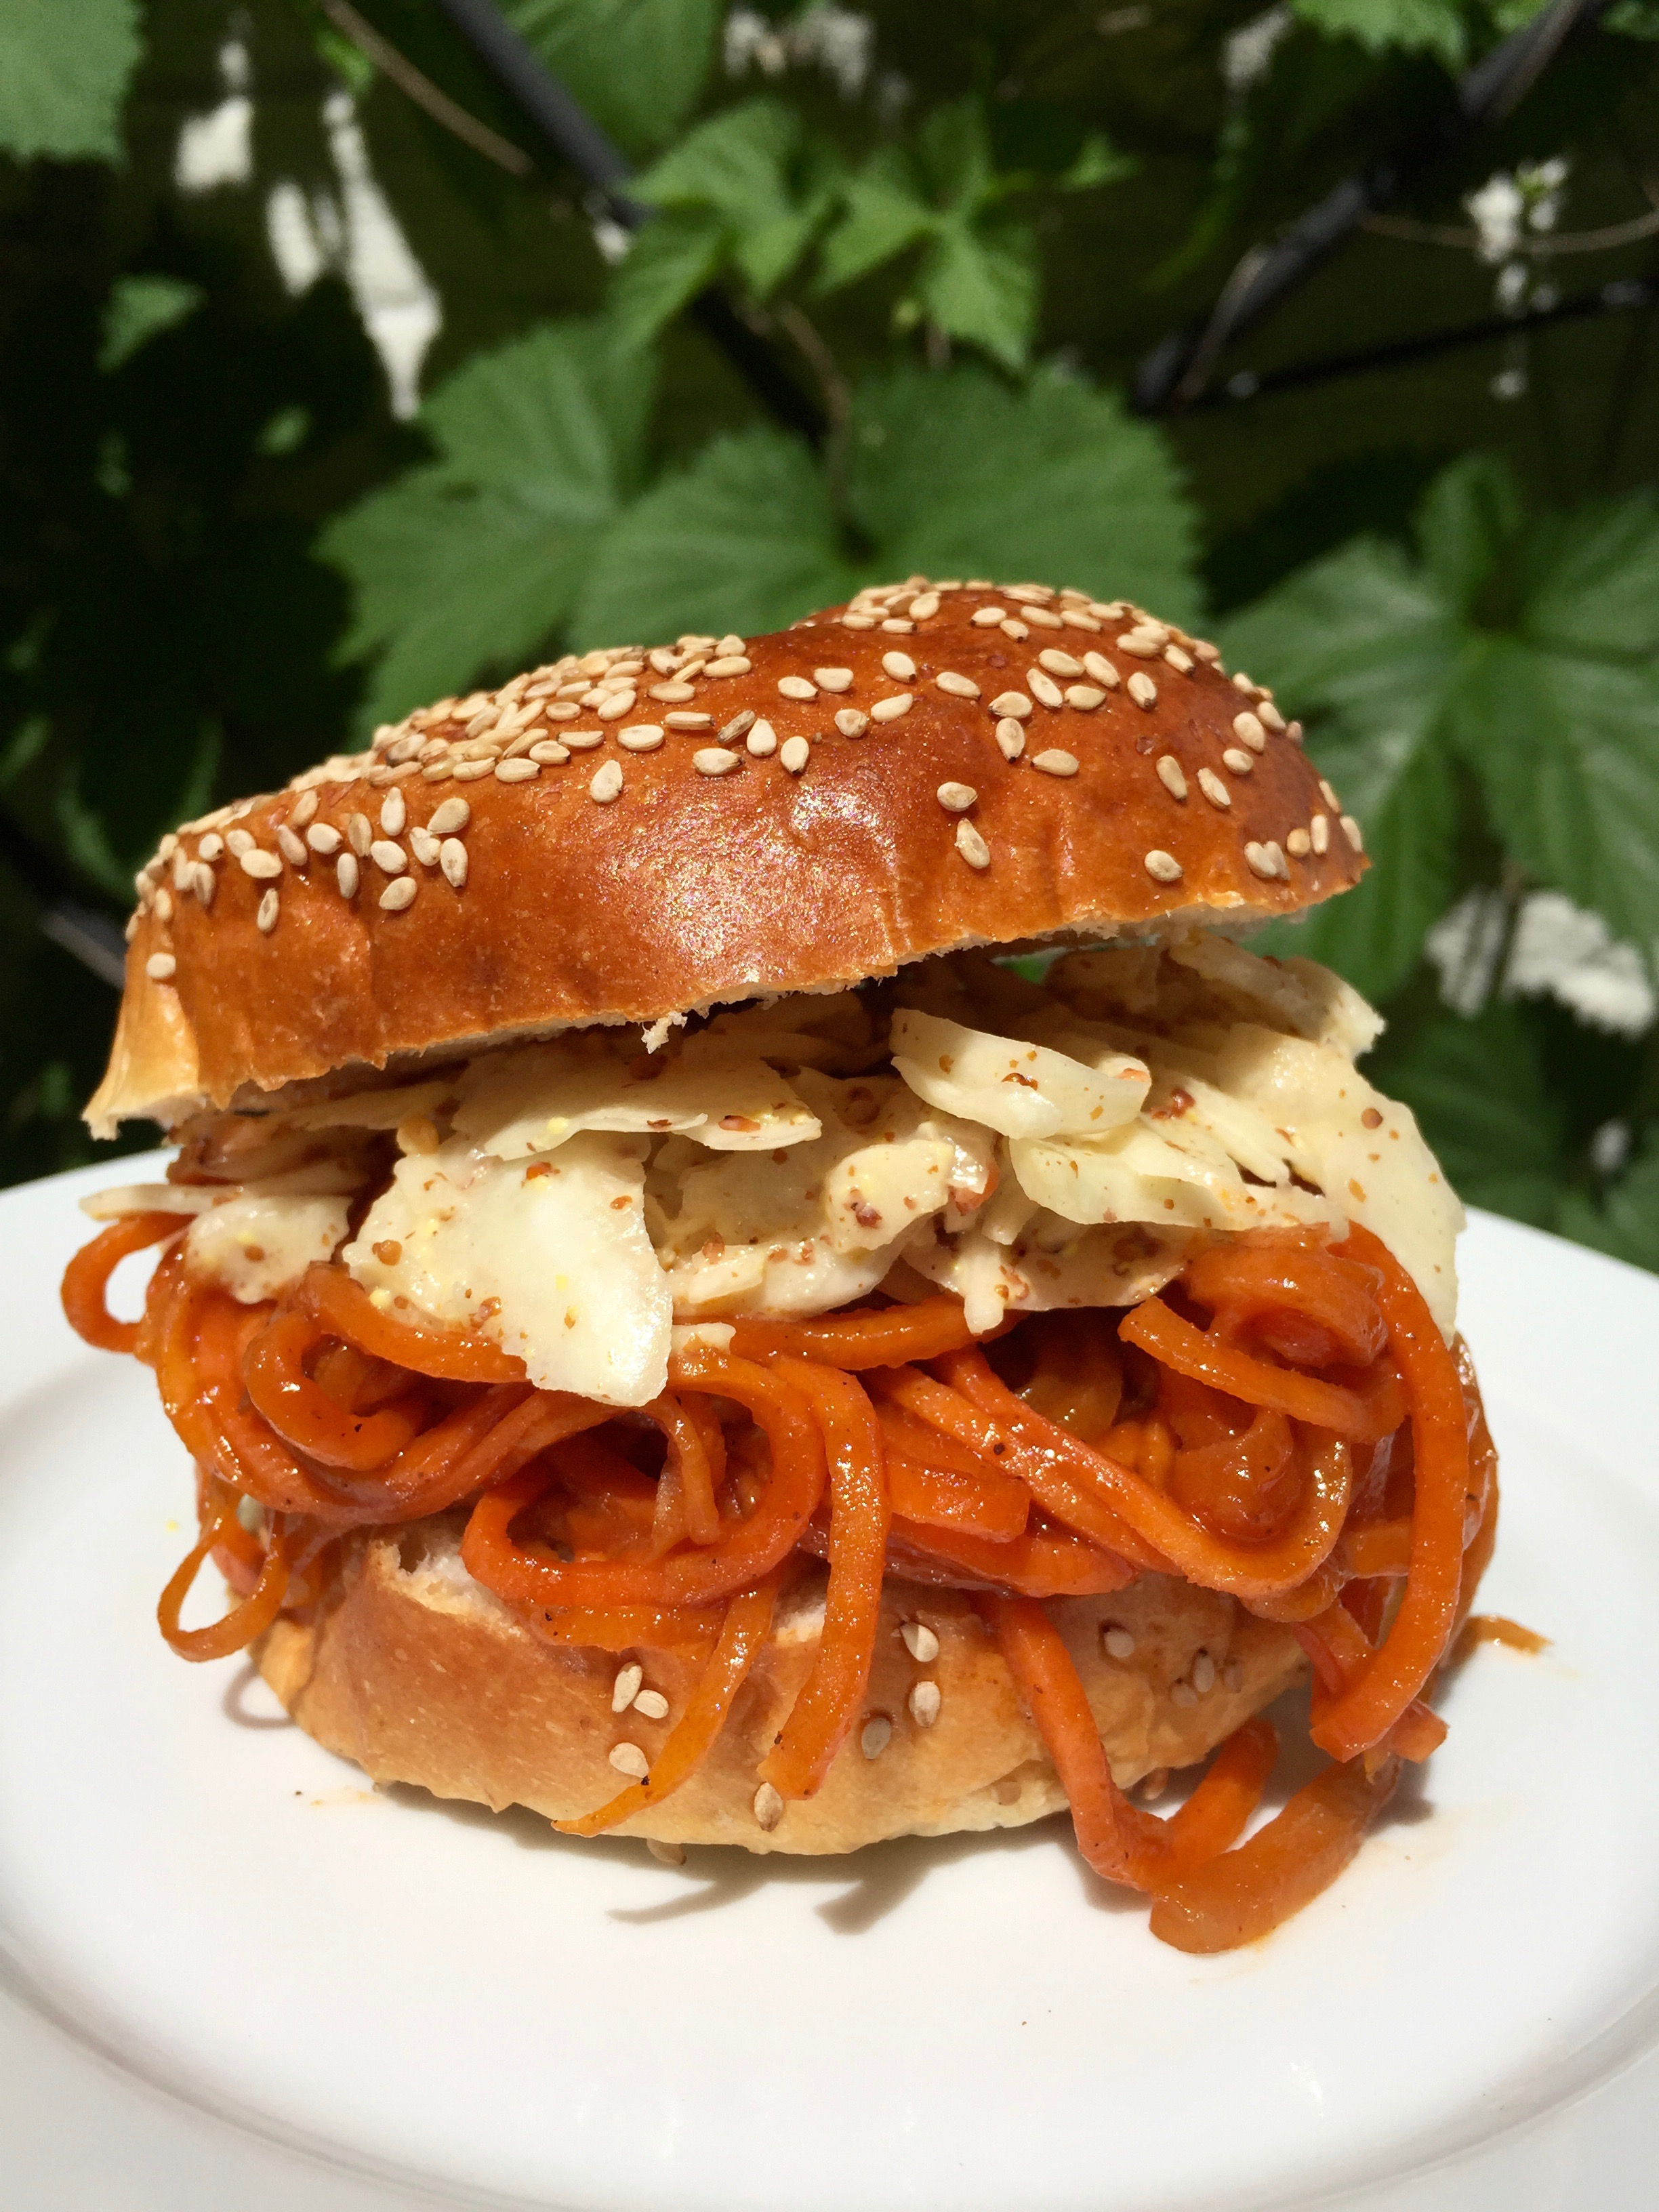 Vegetarian BBQ Pulled Carrot Sandwich with Spiralized Carrots